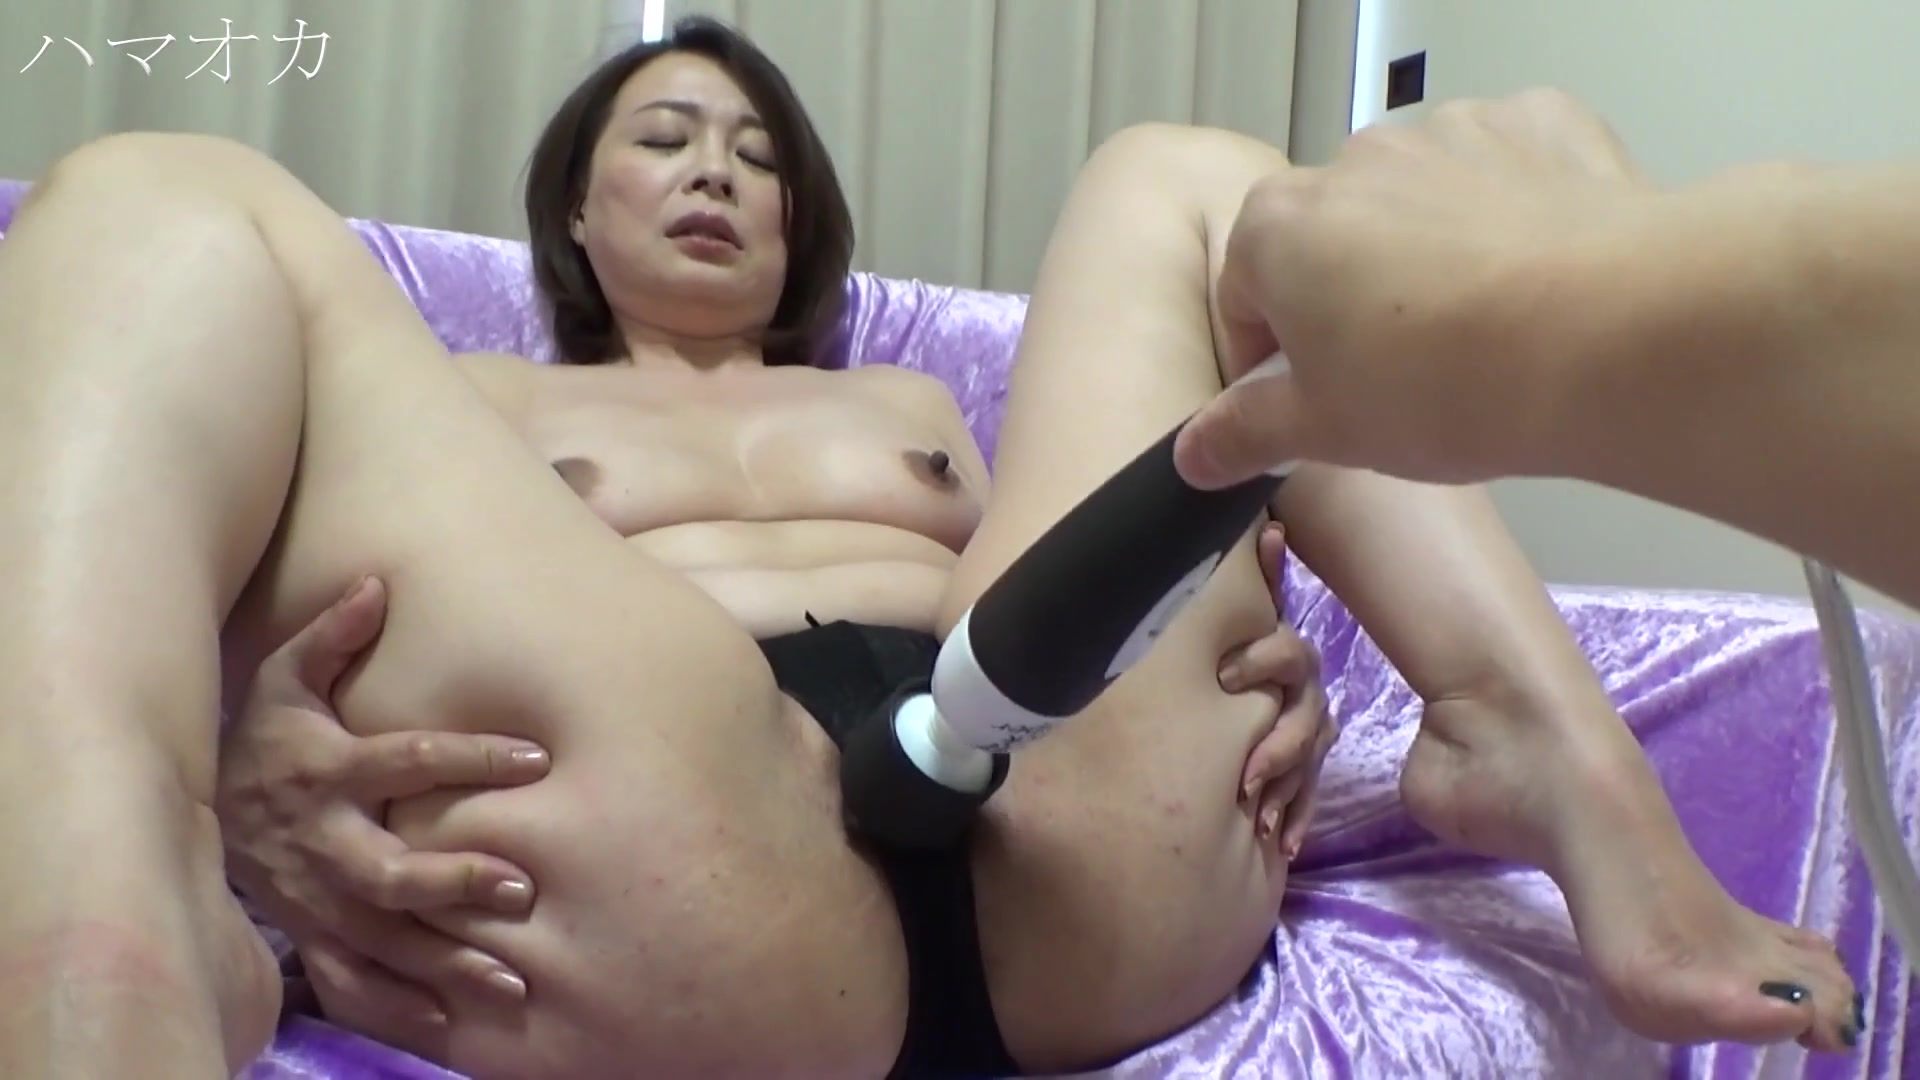 Chubby asian mommy amateur porn